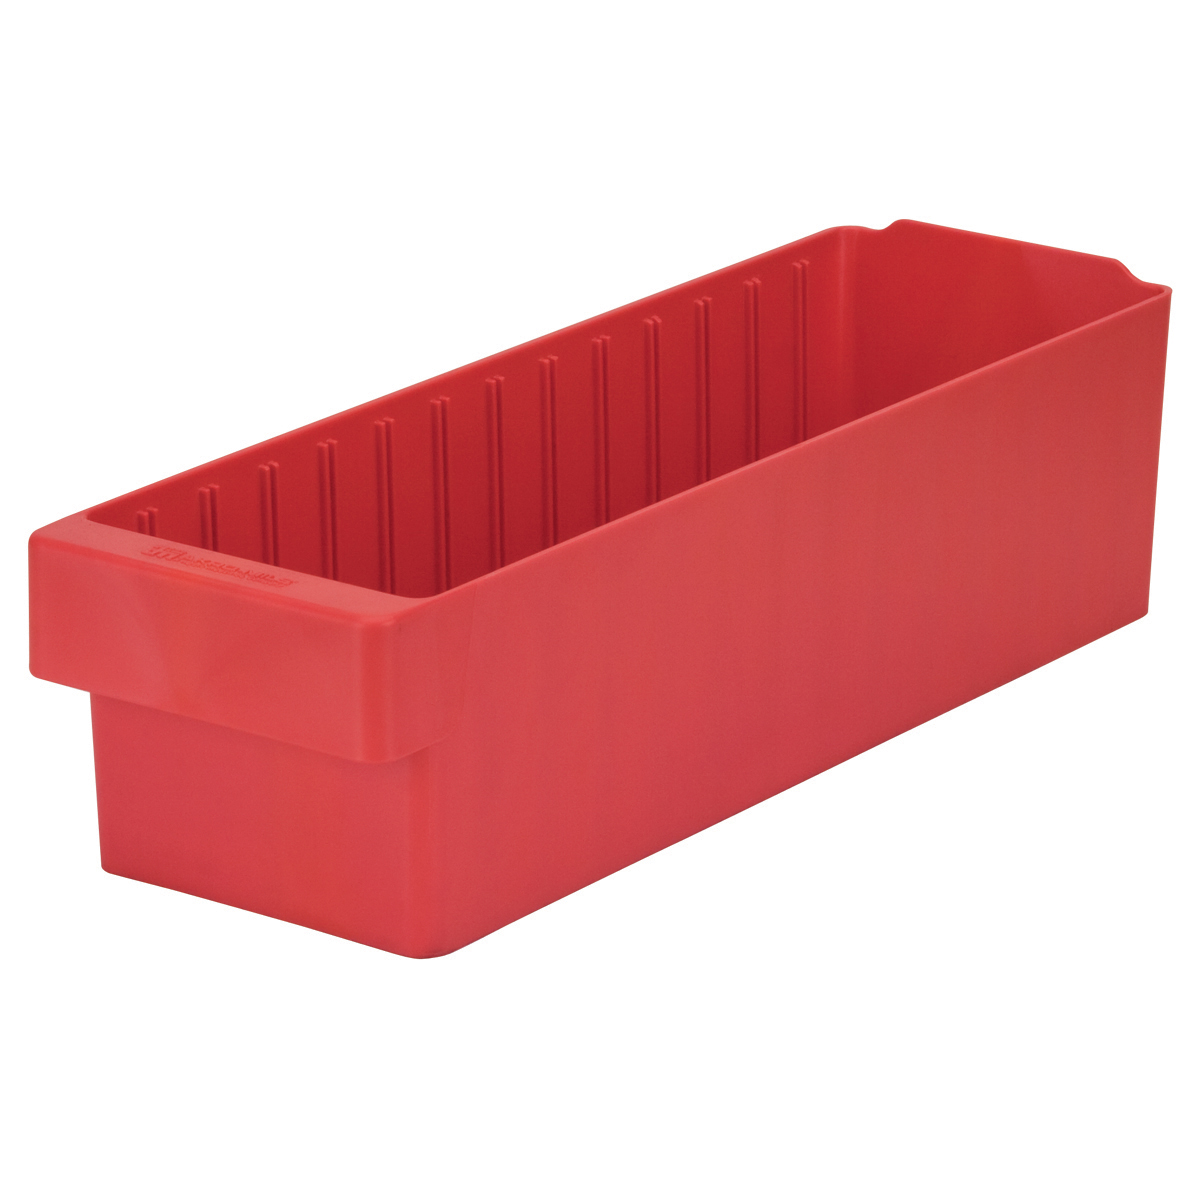 AkroDrawer 17-5/8 x 5-5/8 x 4-5/8, Red (31168RED).  This item sold in carton quantities of 6.